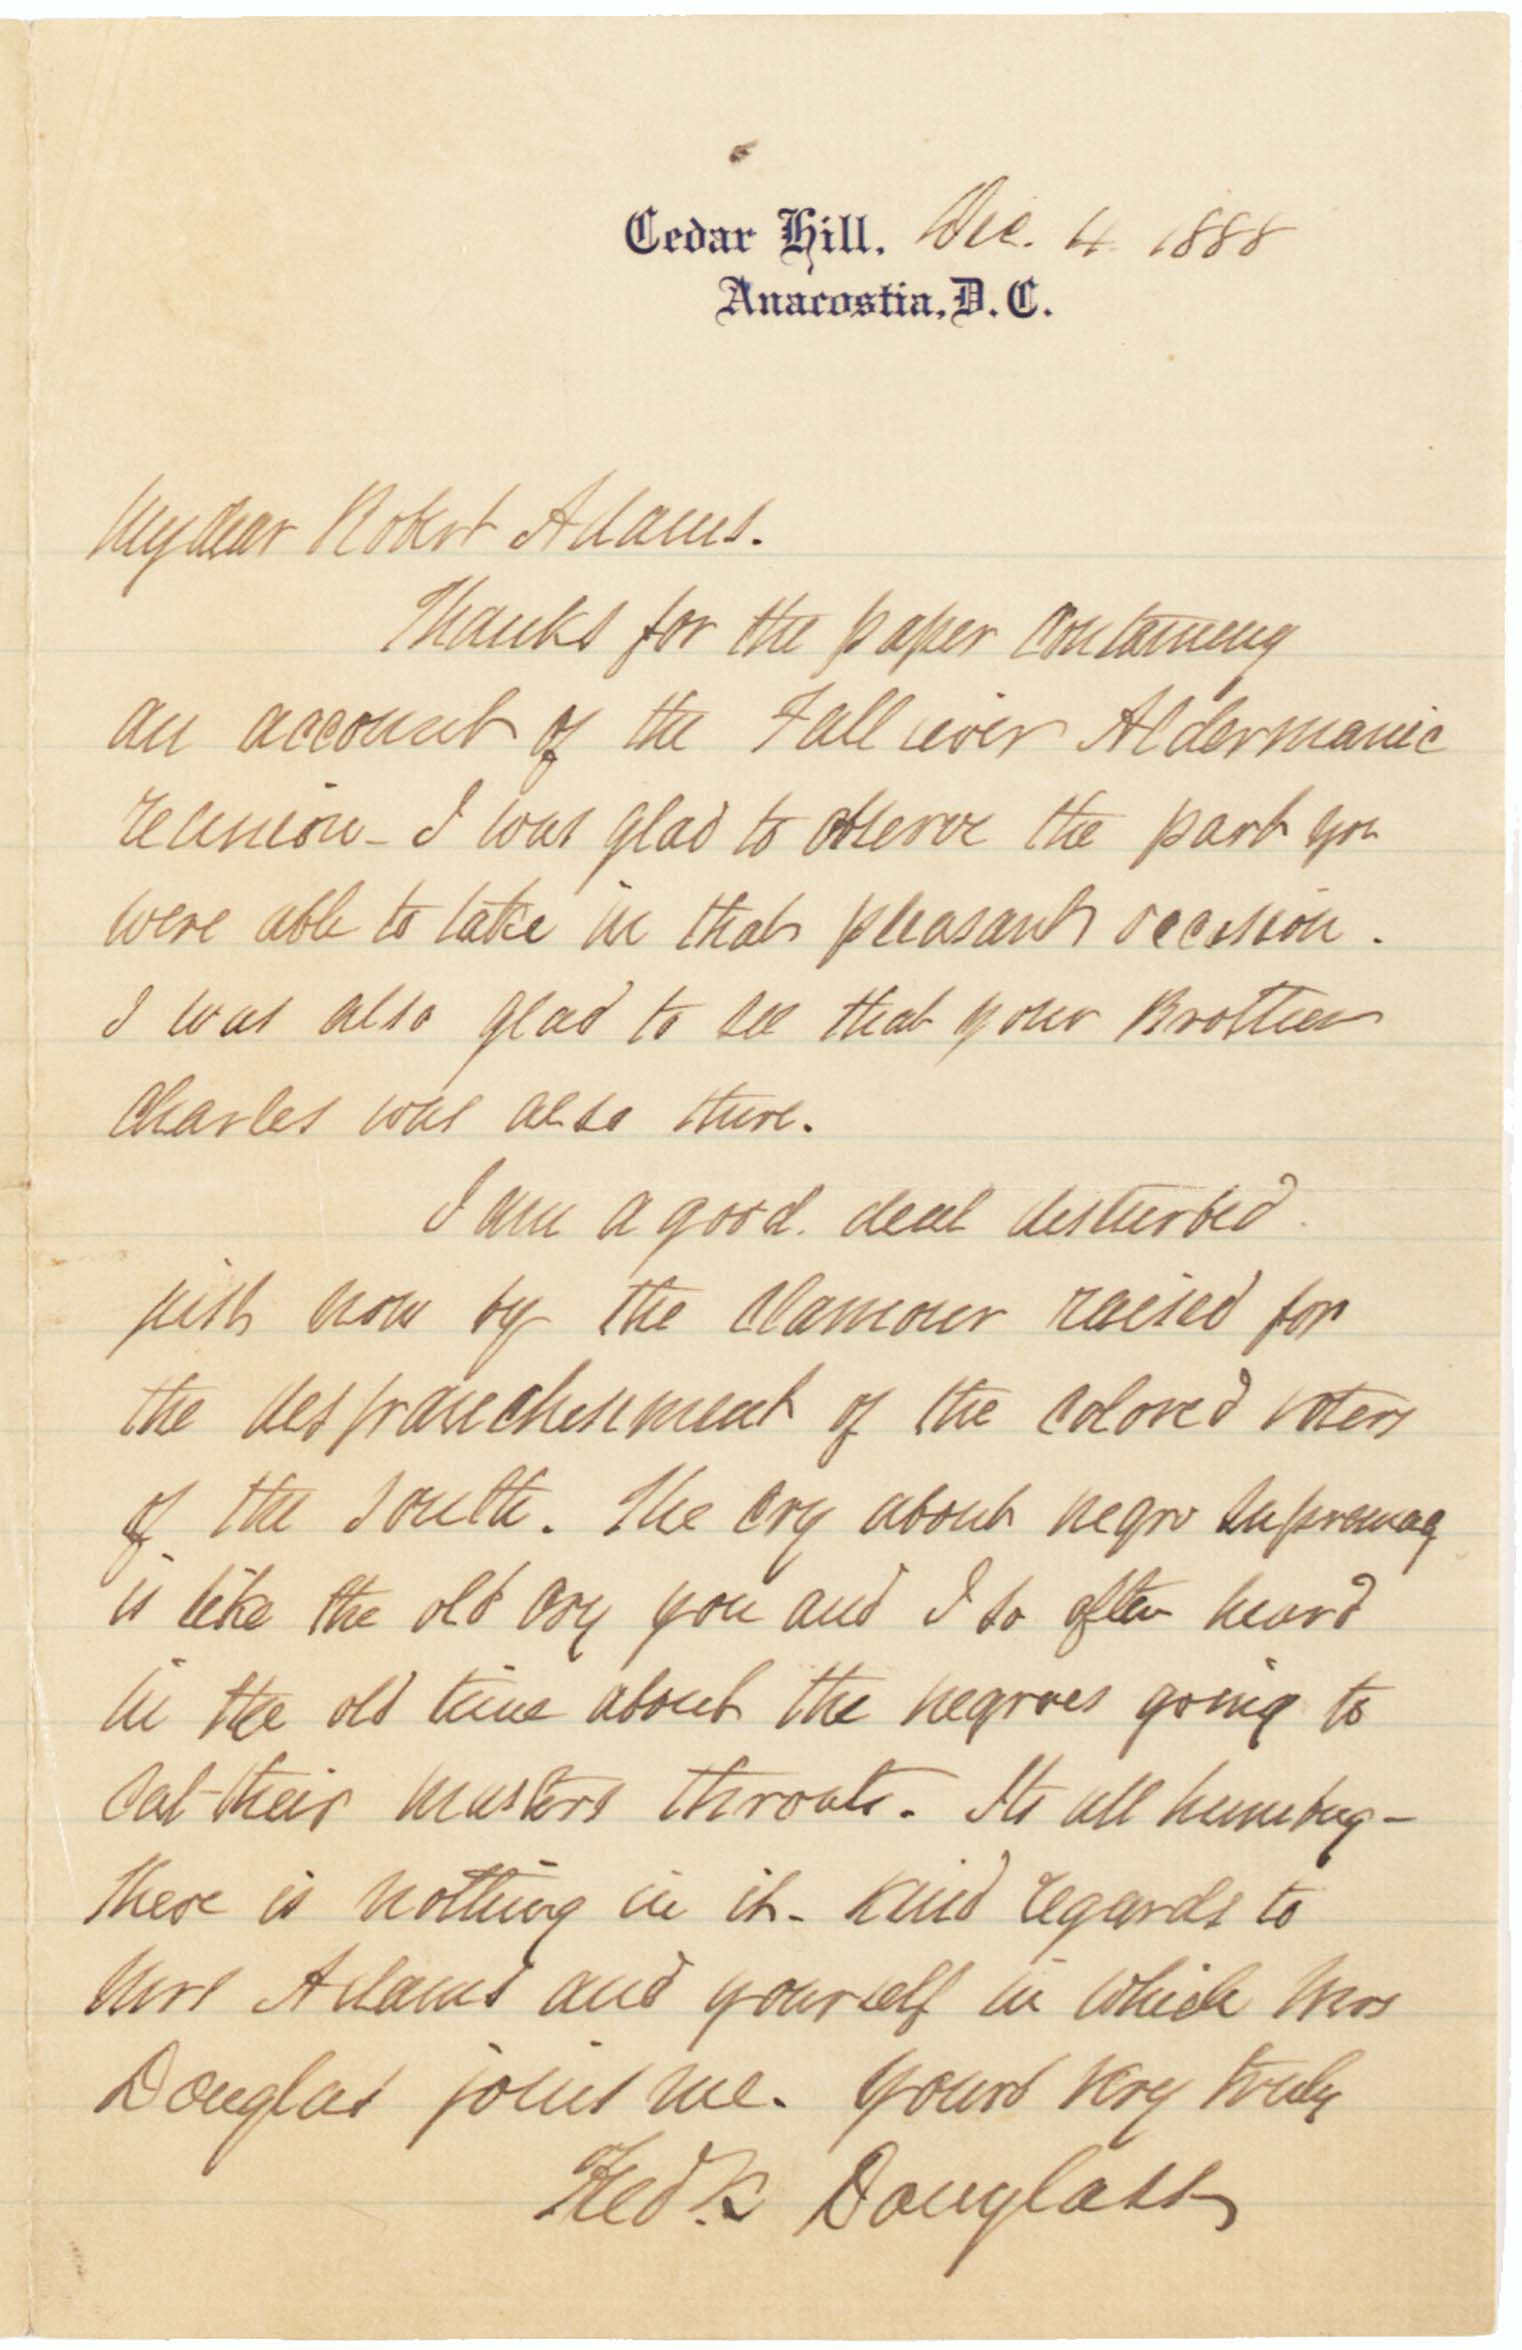 frederick douglass on the disfranchisement of black voters 1888 frederick douglass to robert adams 4 1888 gilder lehrman collection